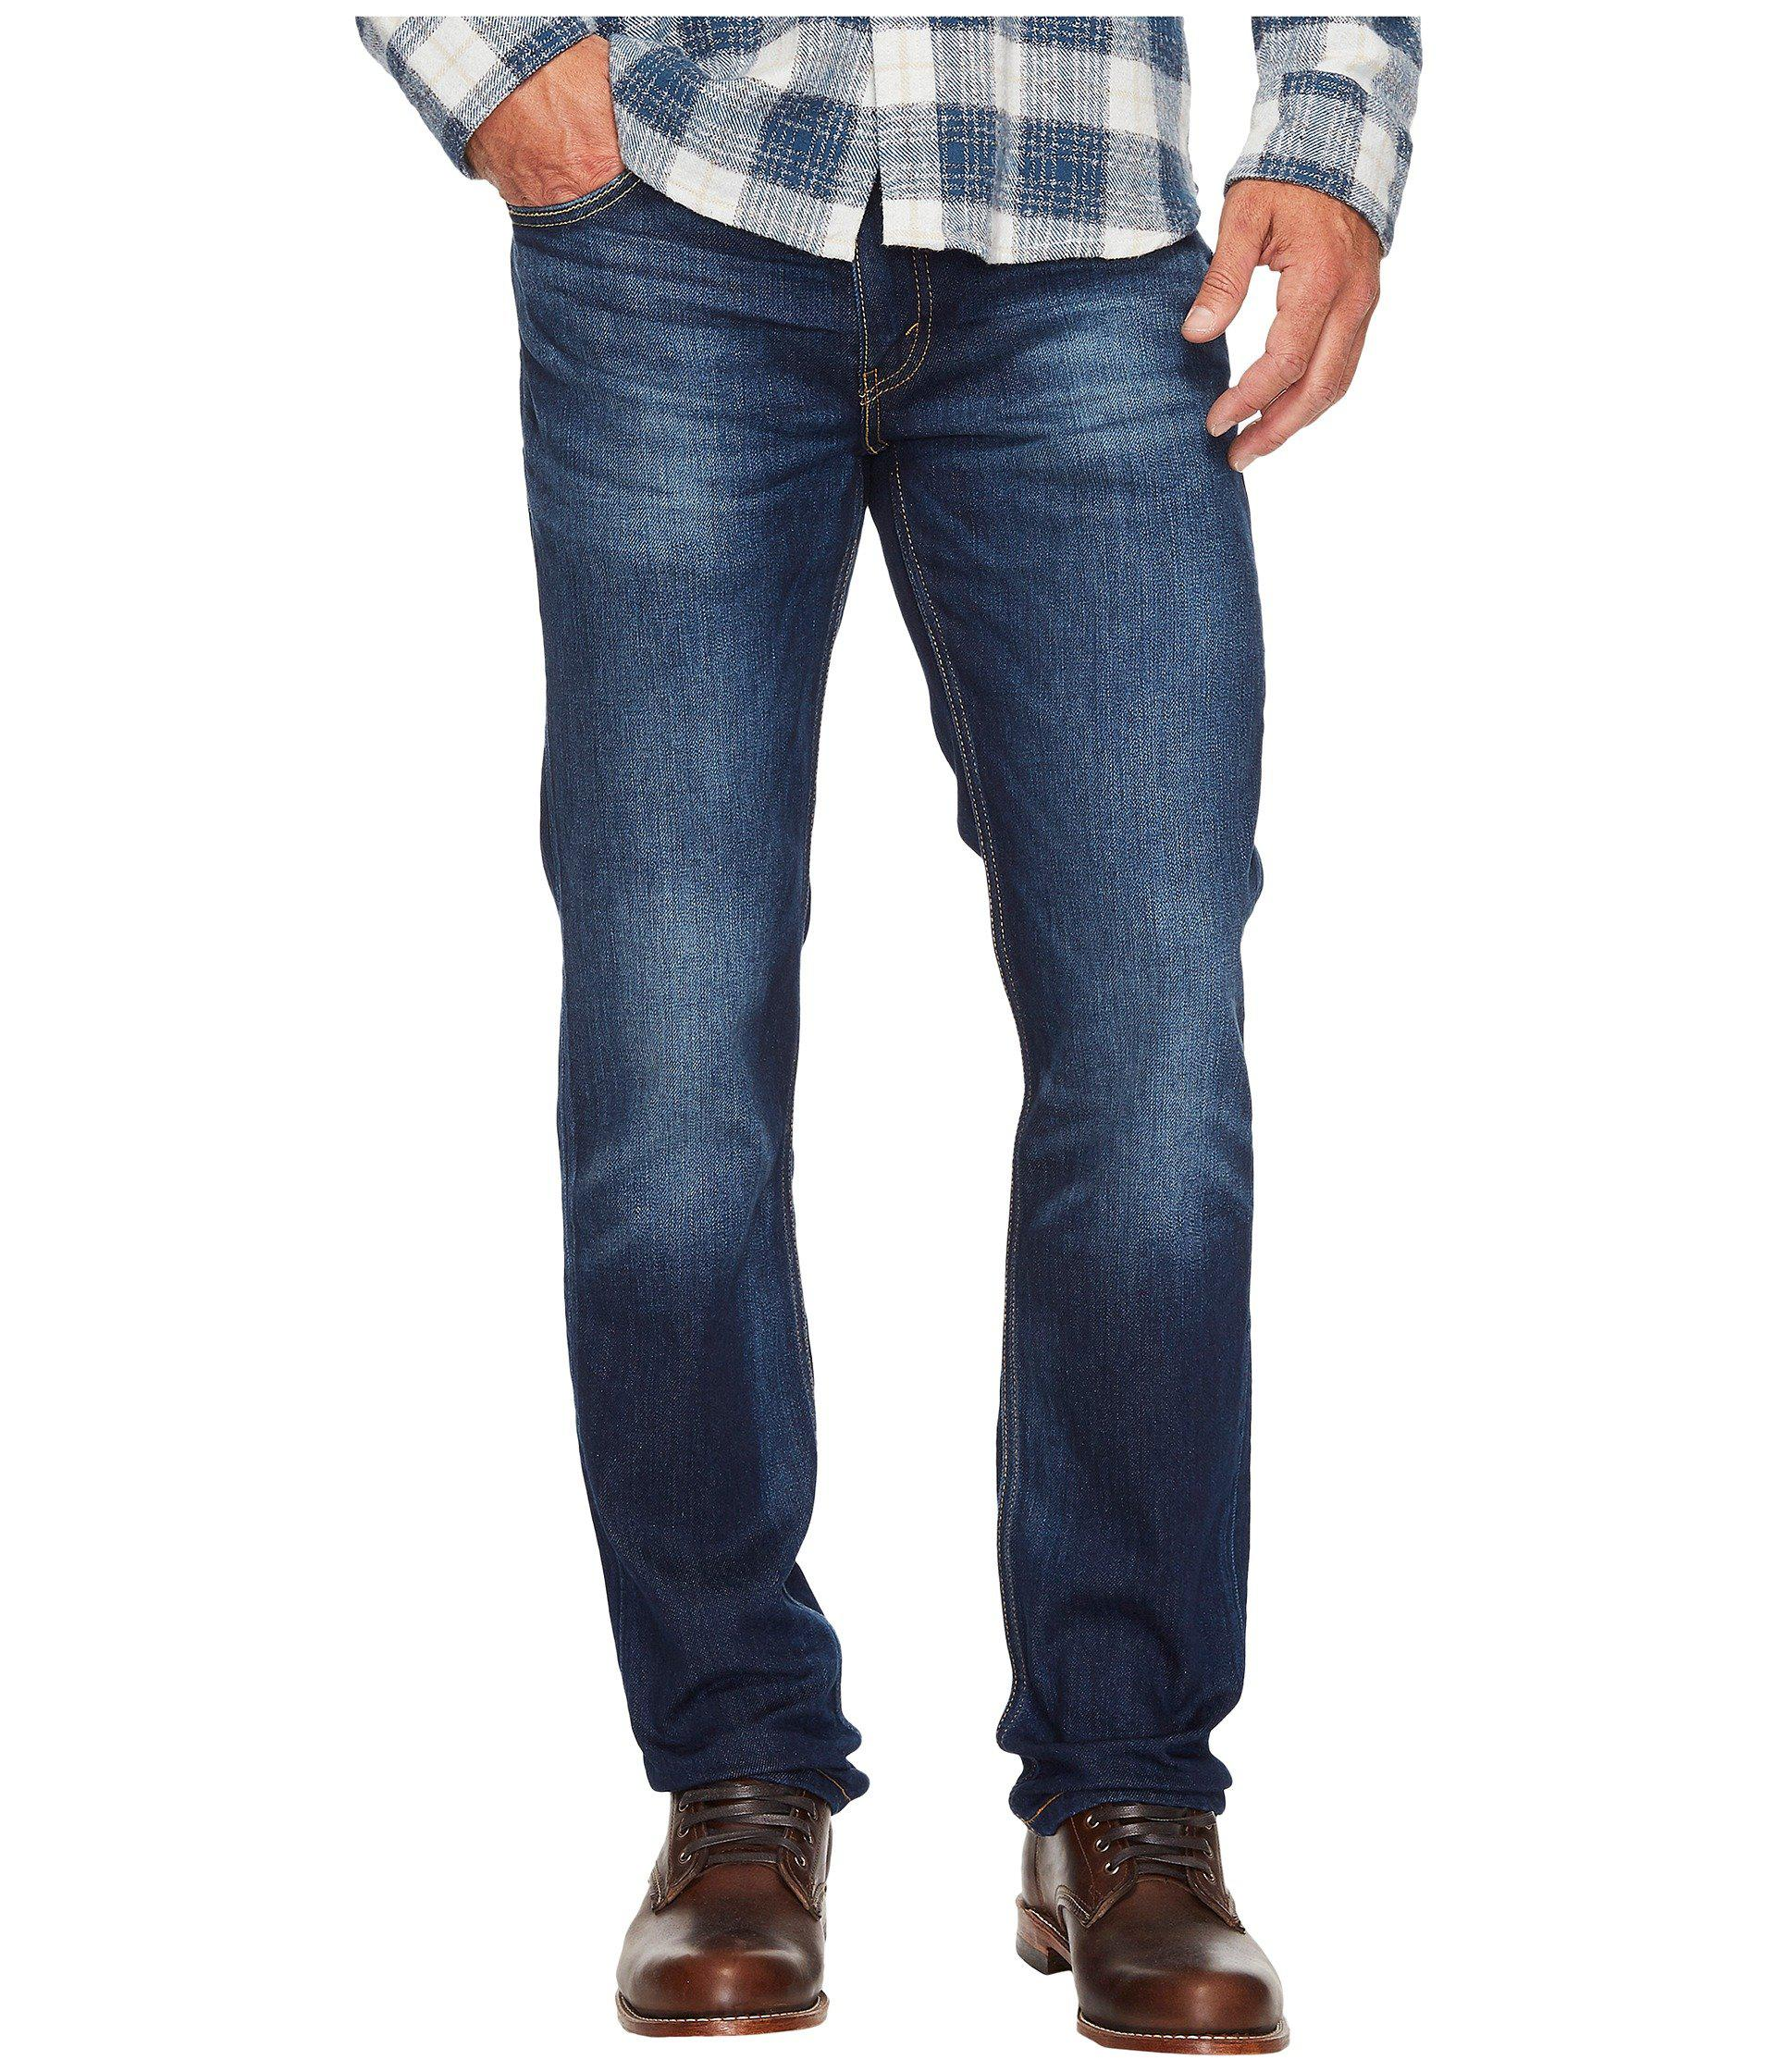 a641dd19ef7 Levi's - Blue Levi's(r) Mens 511tm Slim (black) Men's Jeans for. View  fullscreen